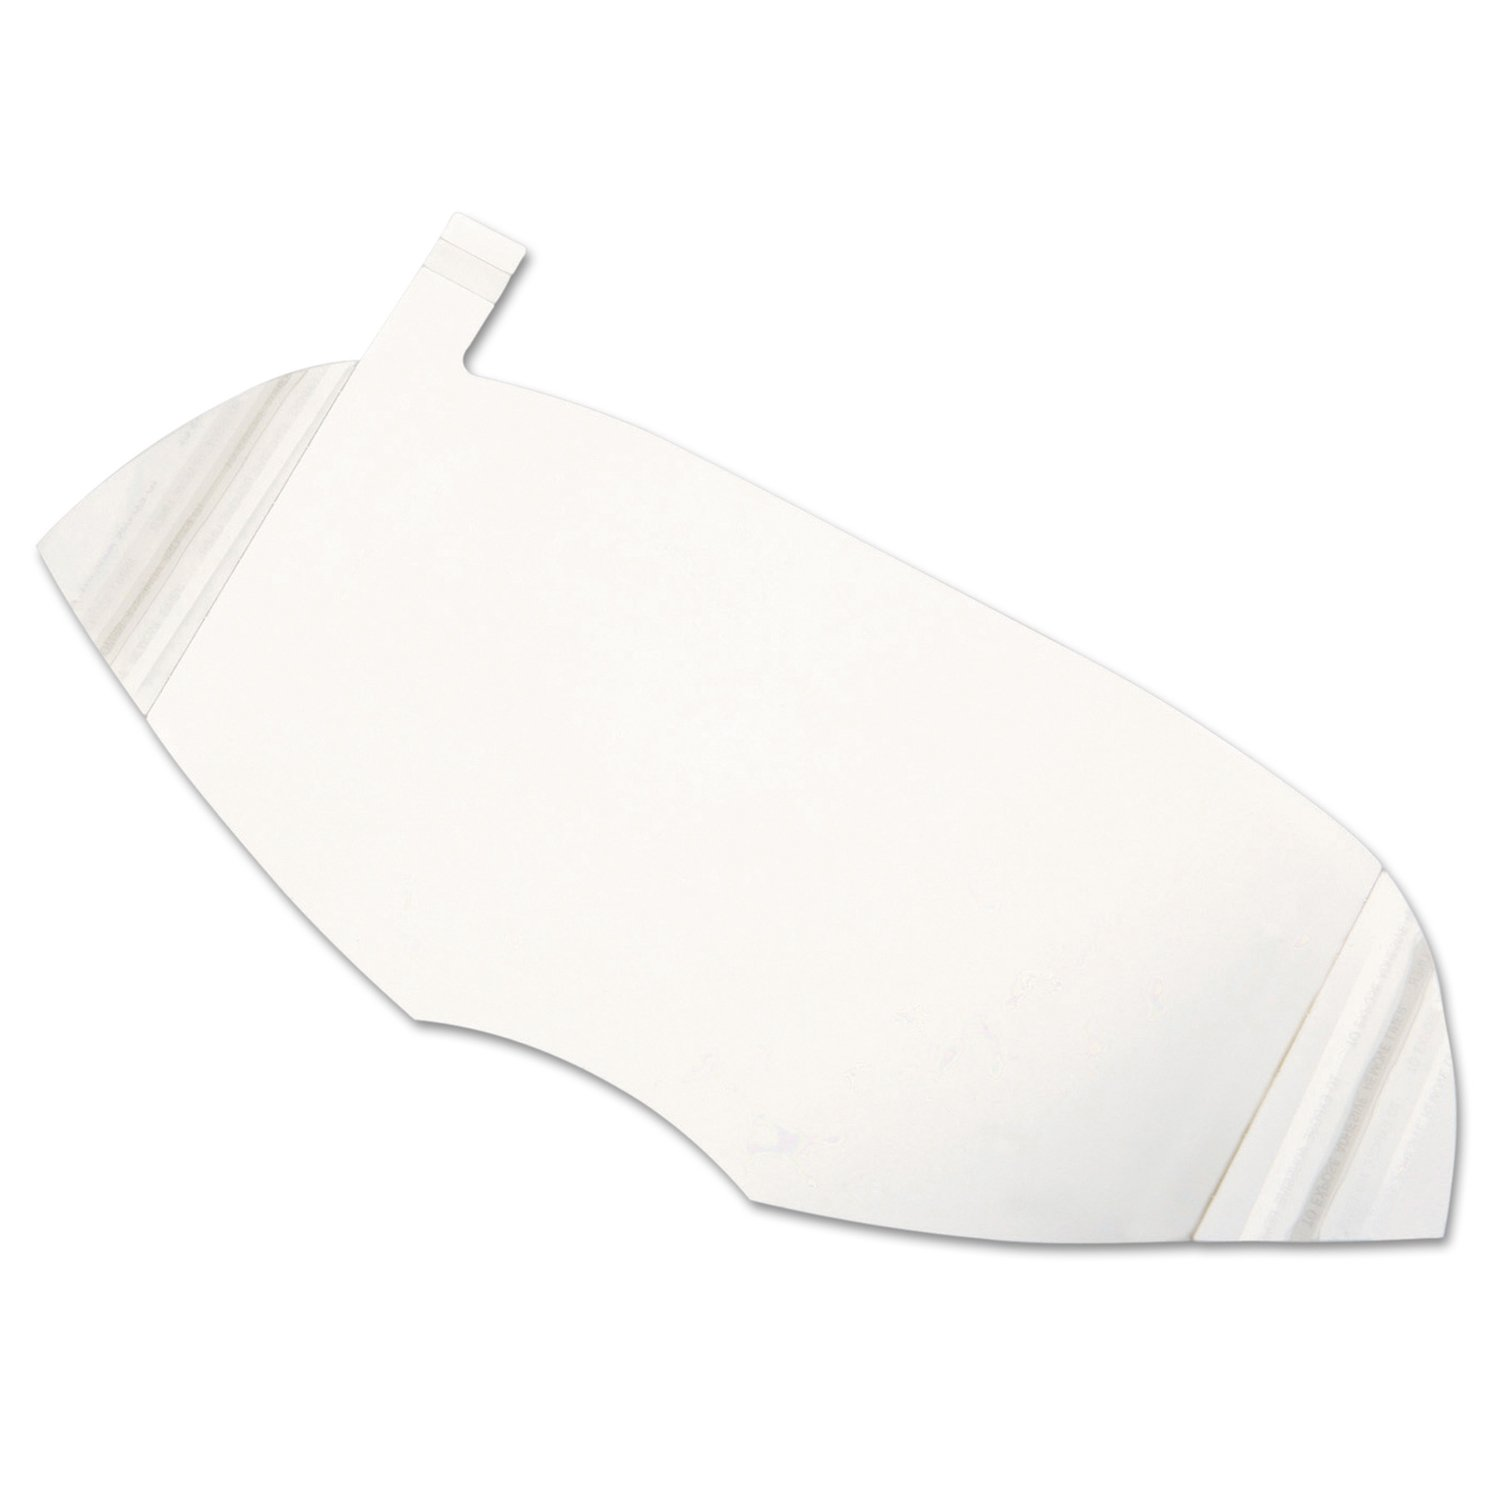 North by Honeywell 80836A Peel Away Windows for Full Face Piece, North 5400, 7600 and 7800 Series, 6'' 15/Pack by Honeywell